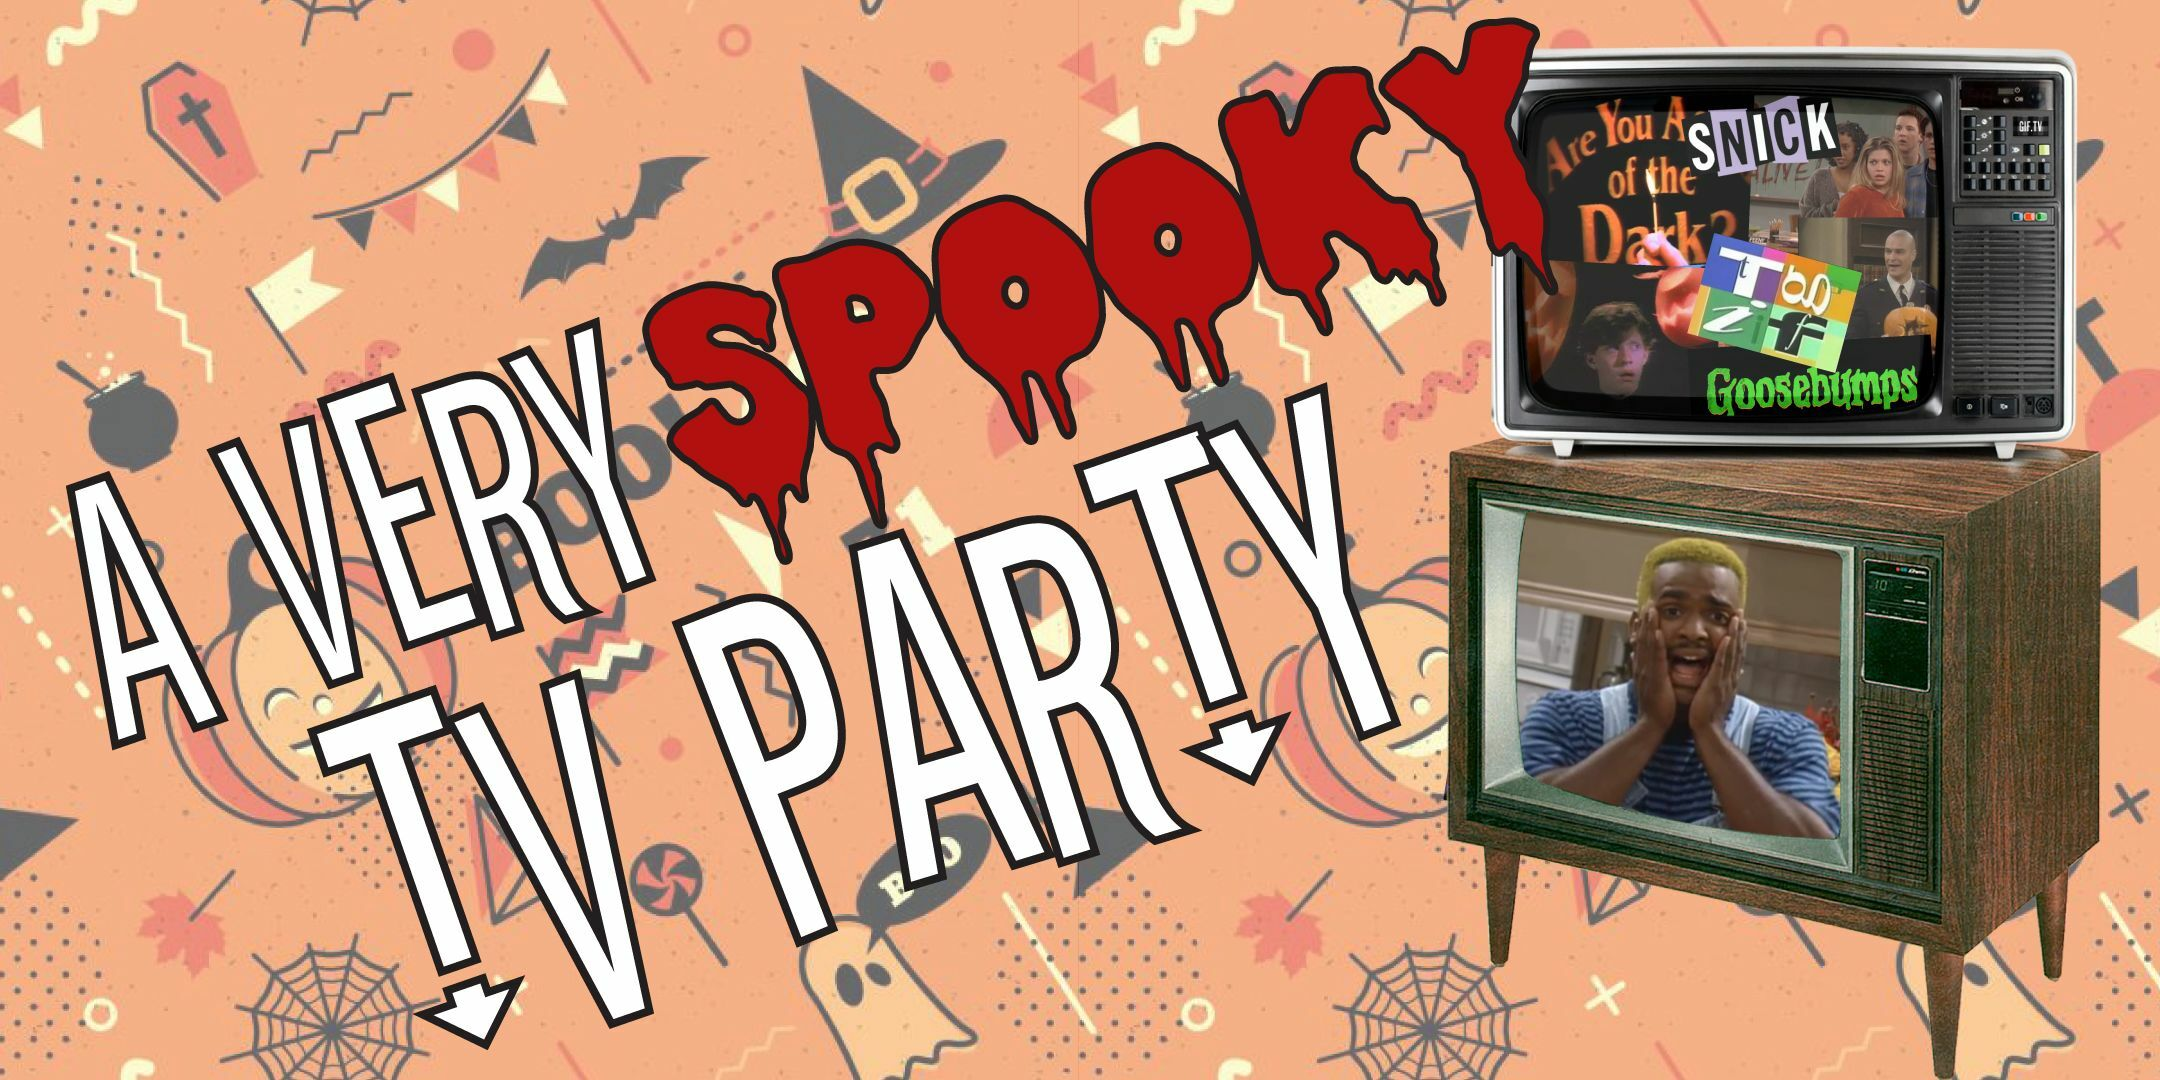 A Very Spooky TV Party -- Online